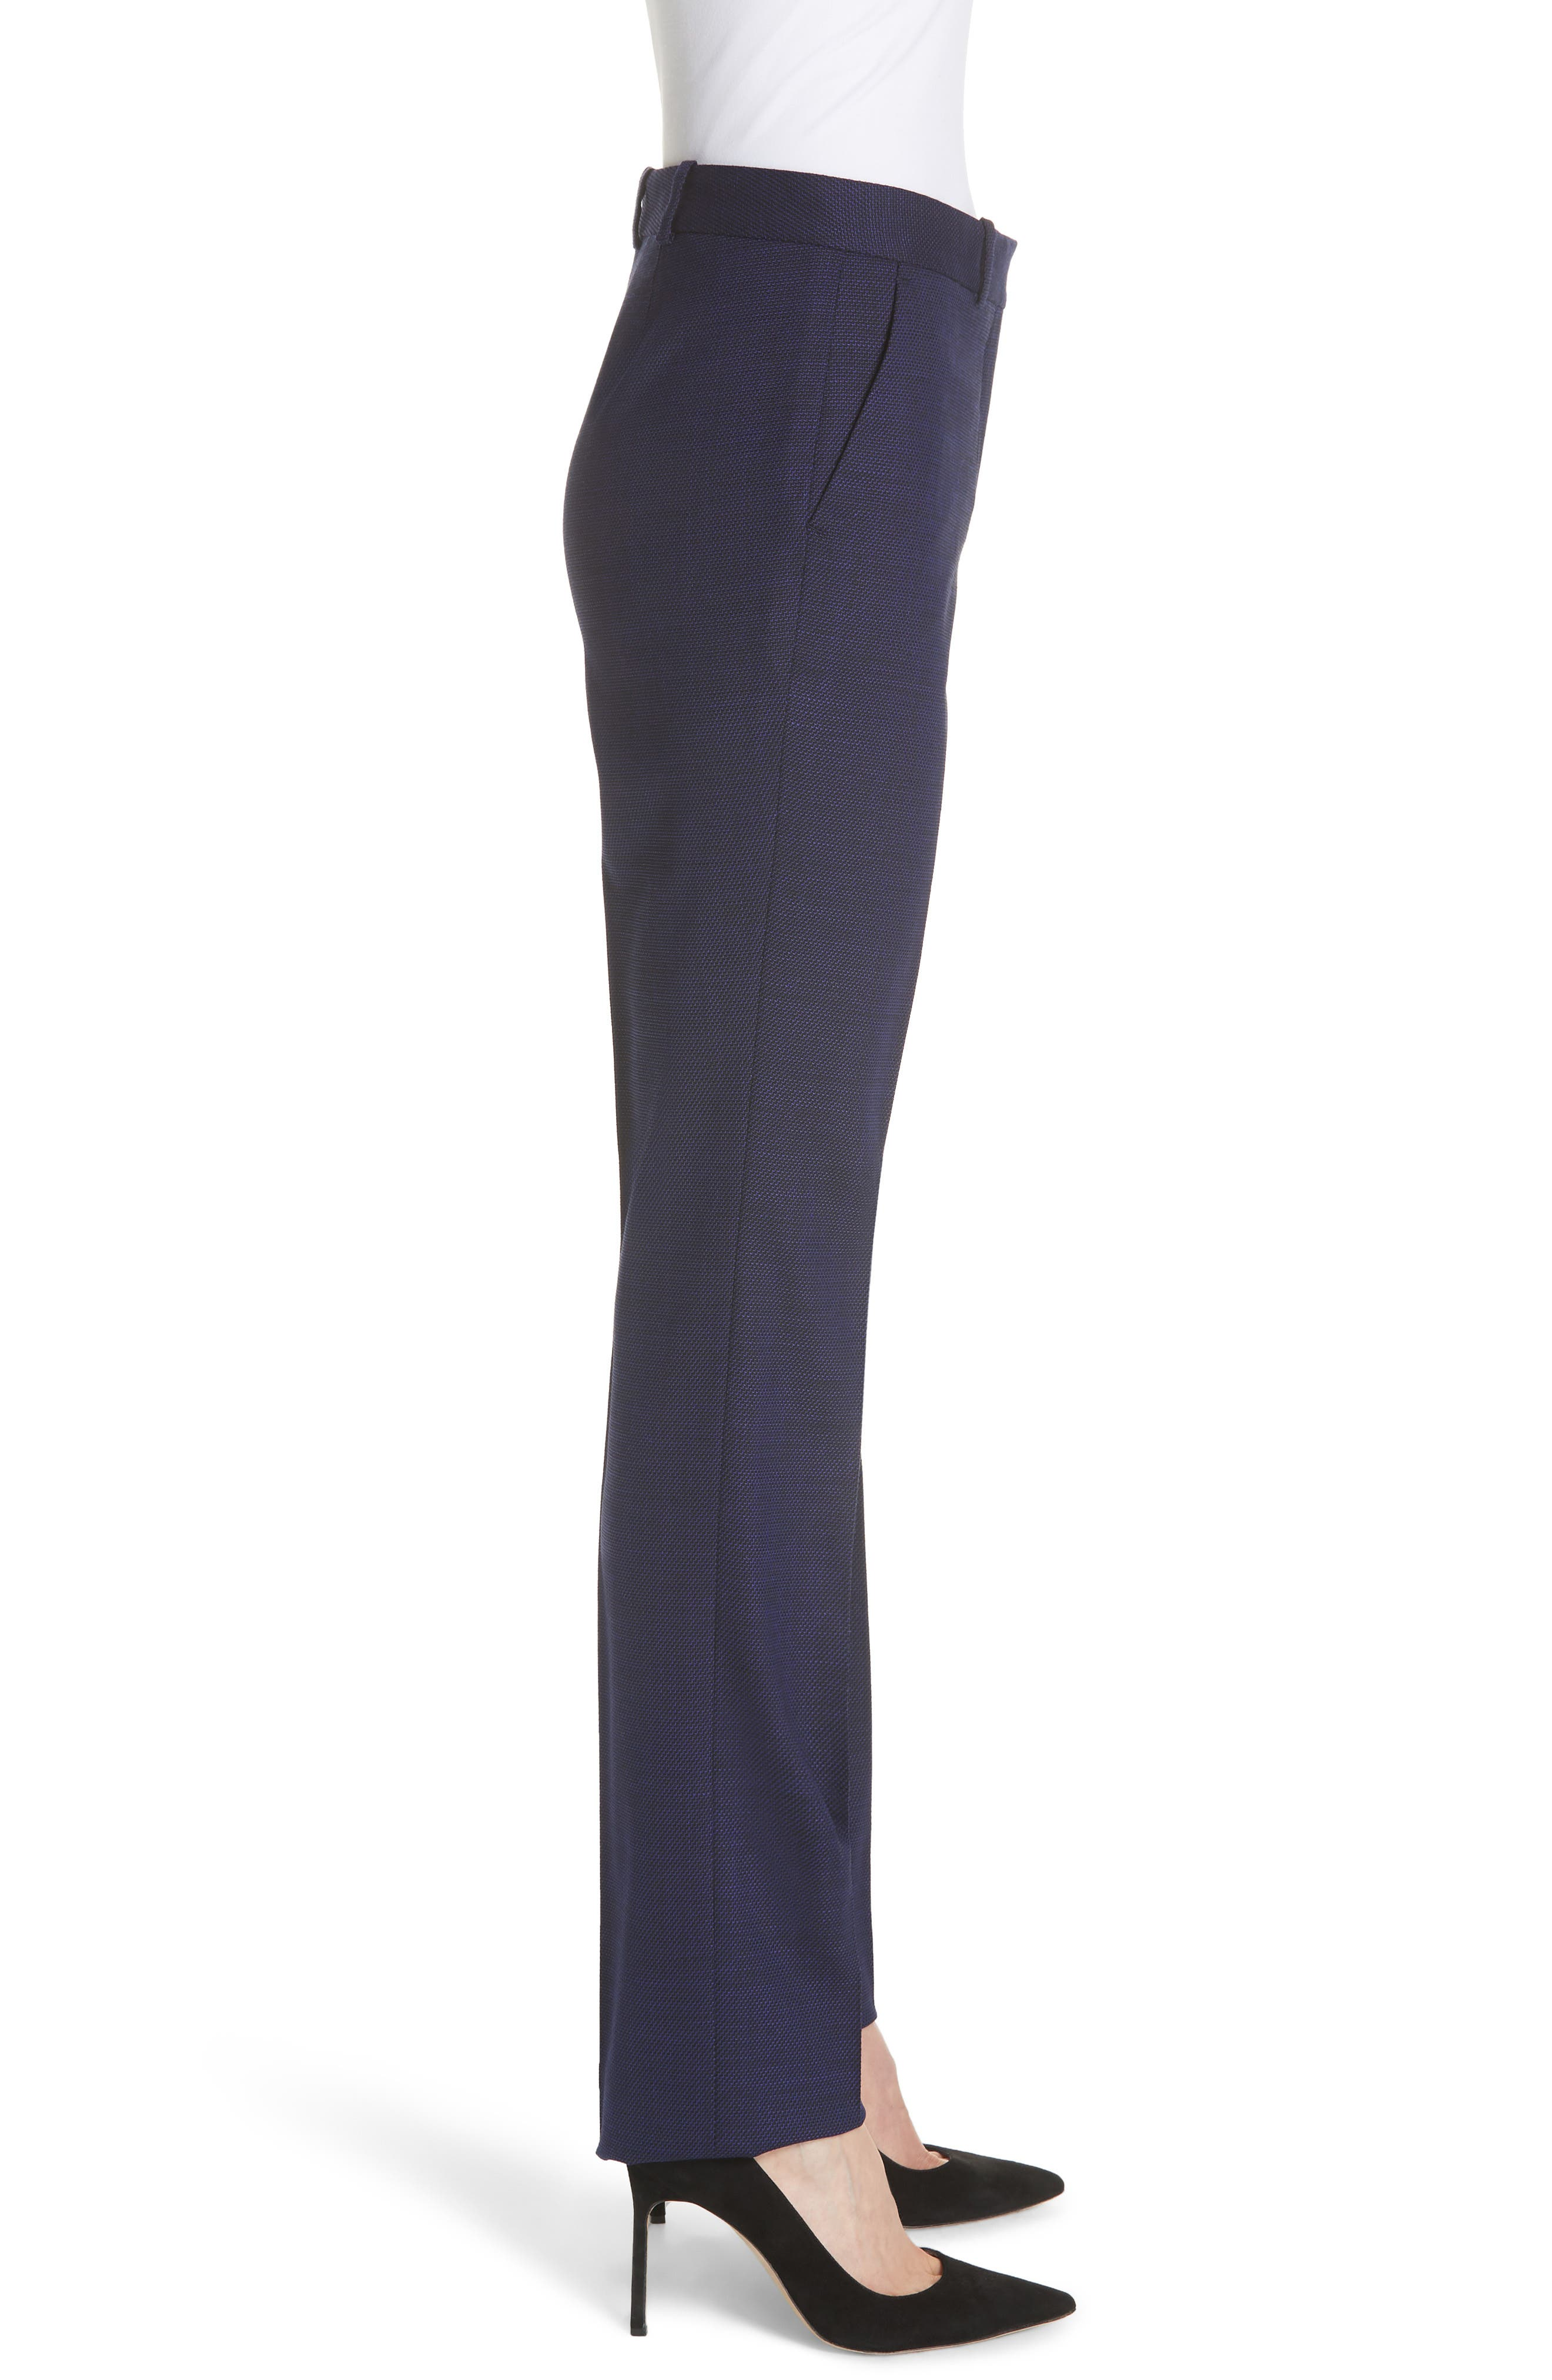 Titana Straight Leg Suit Pants,                             Alternate thumbnail 3, color,                             DEEP LILAC FANTASY